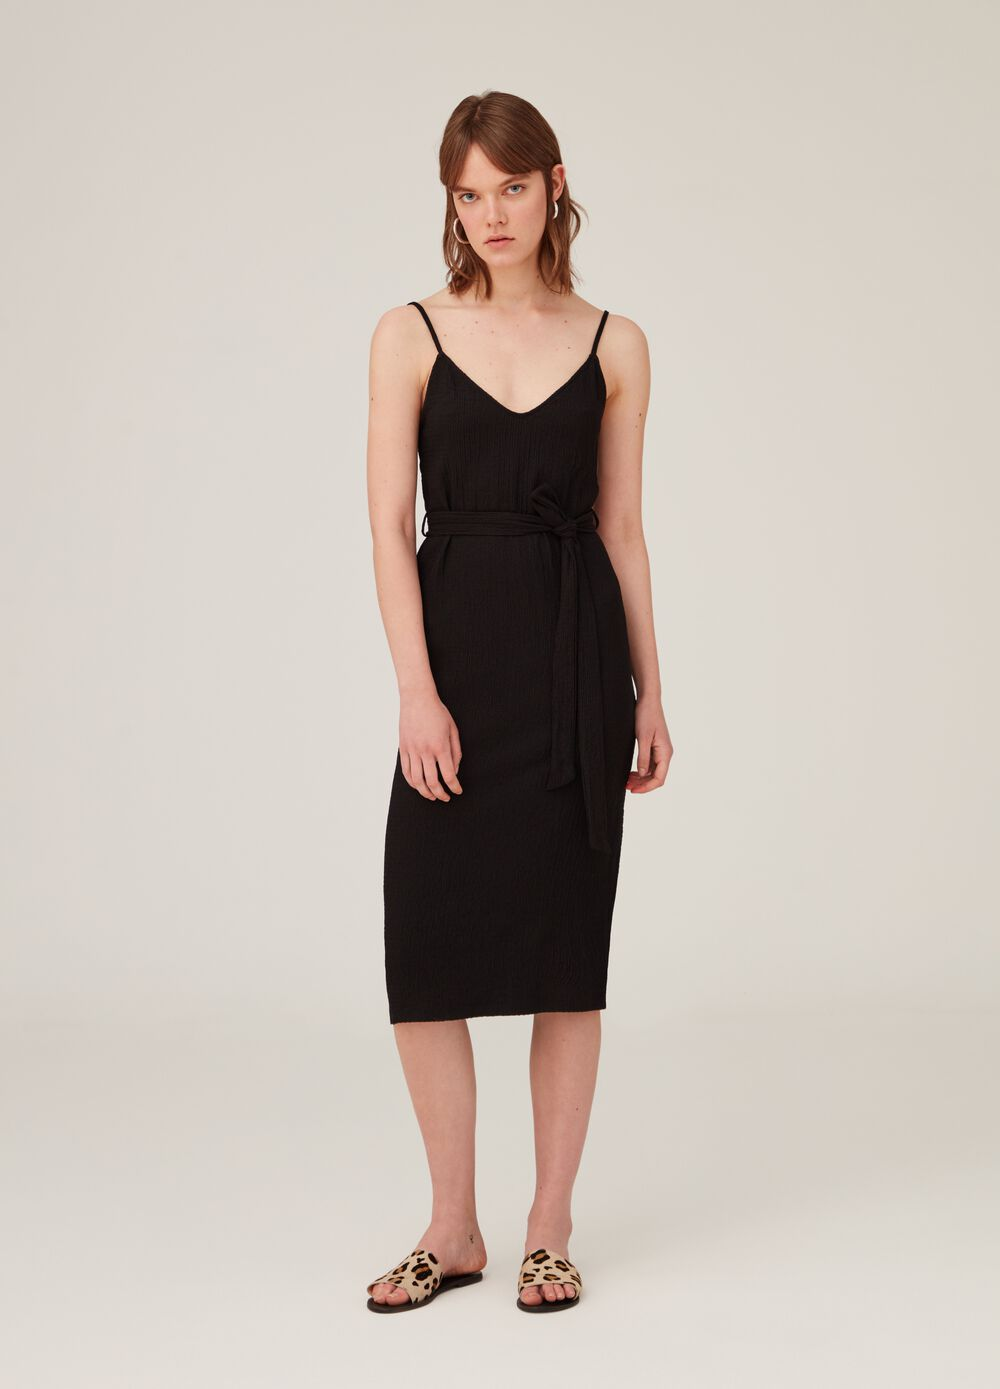 Sleeveless dress with knotted belt